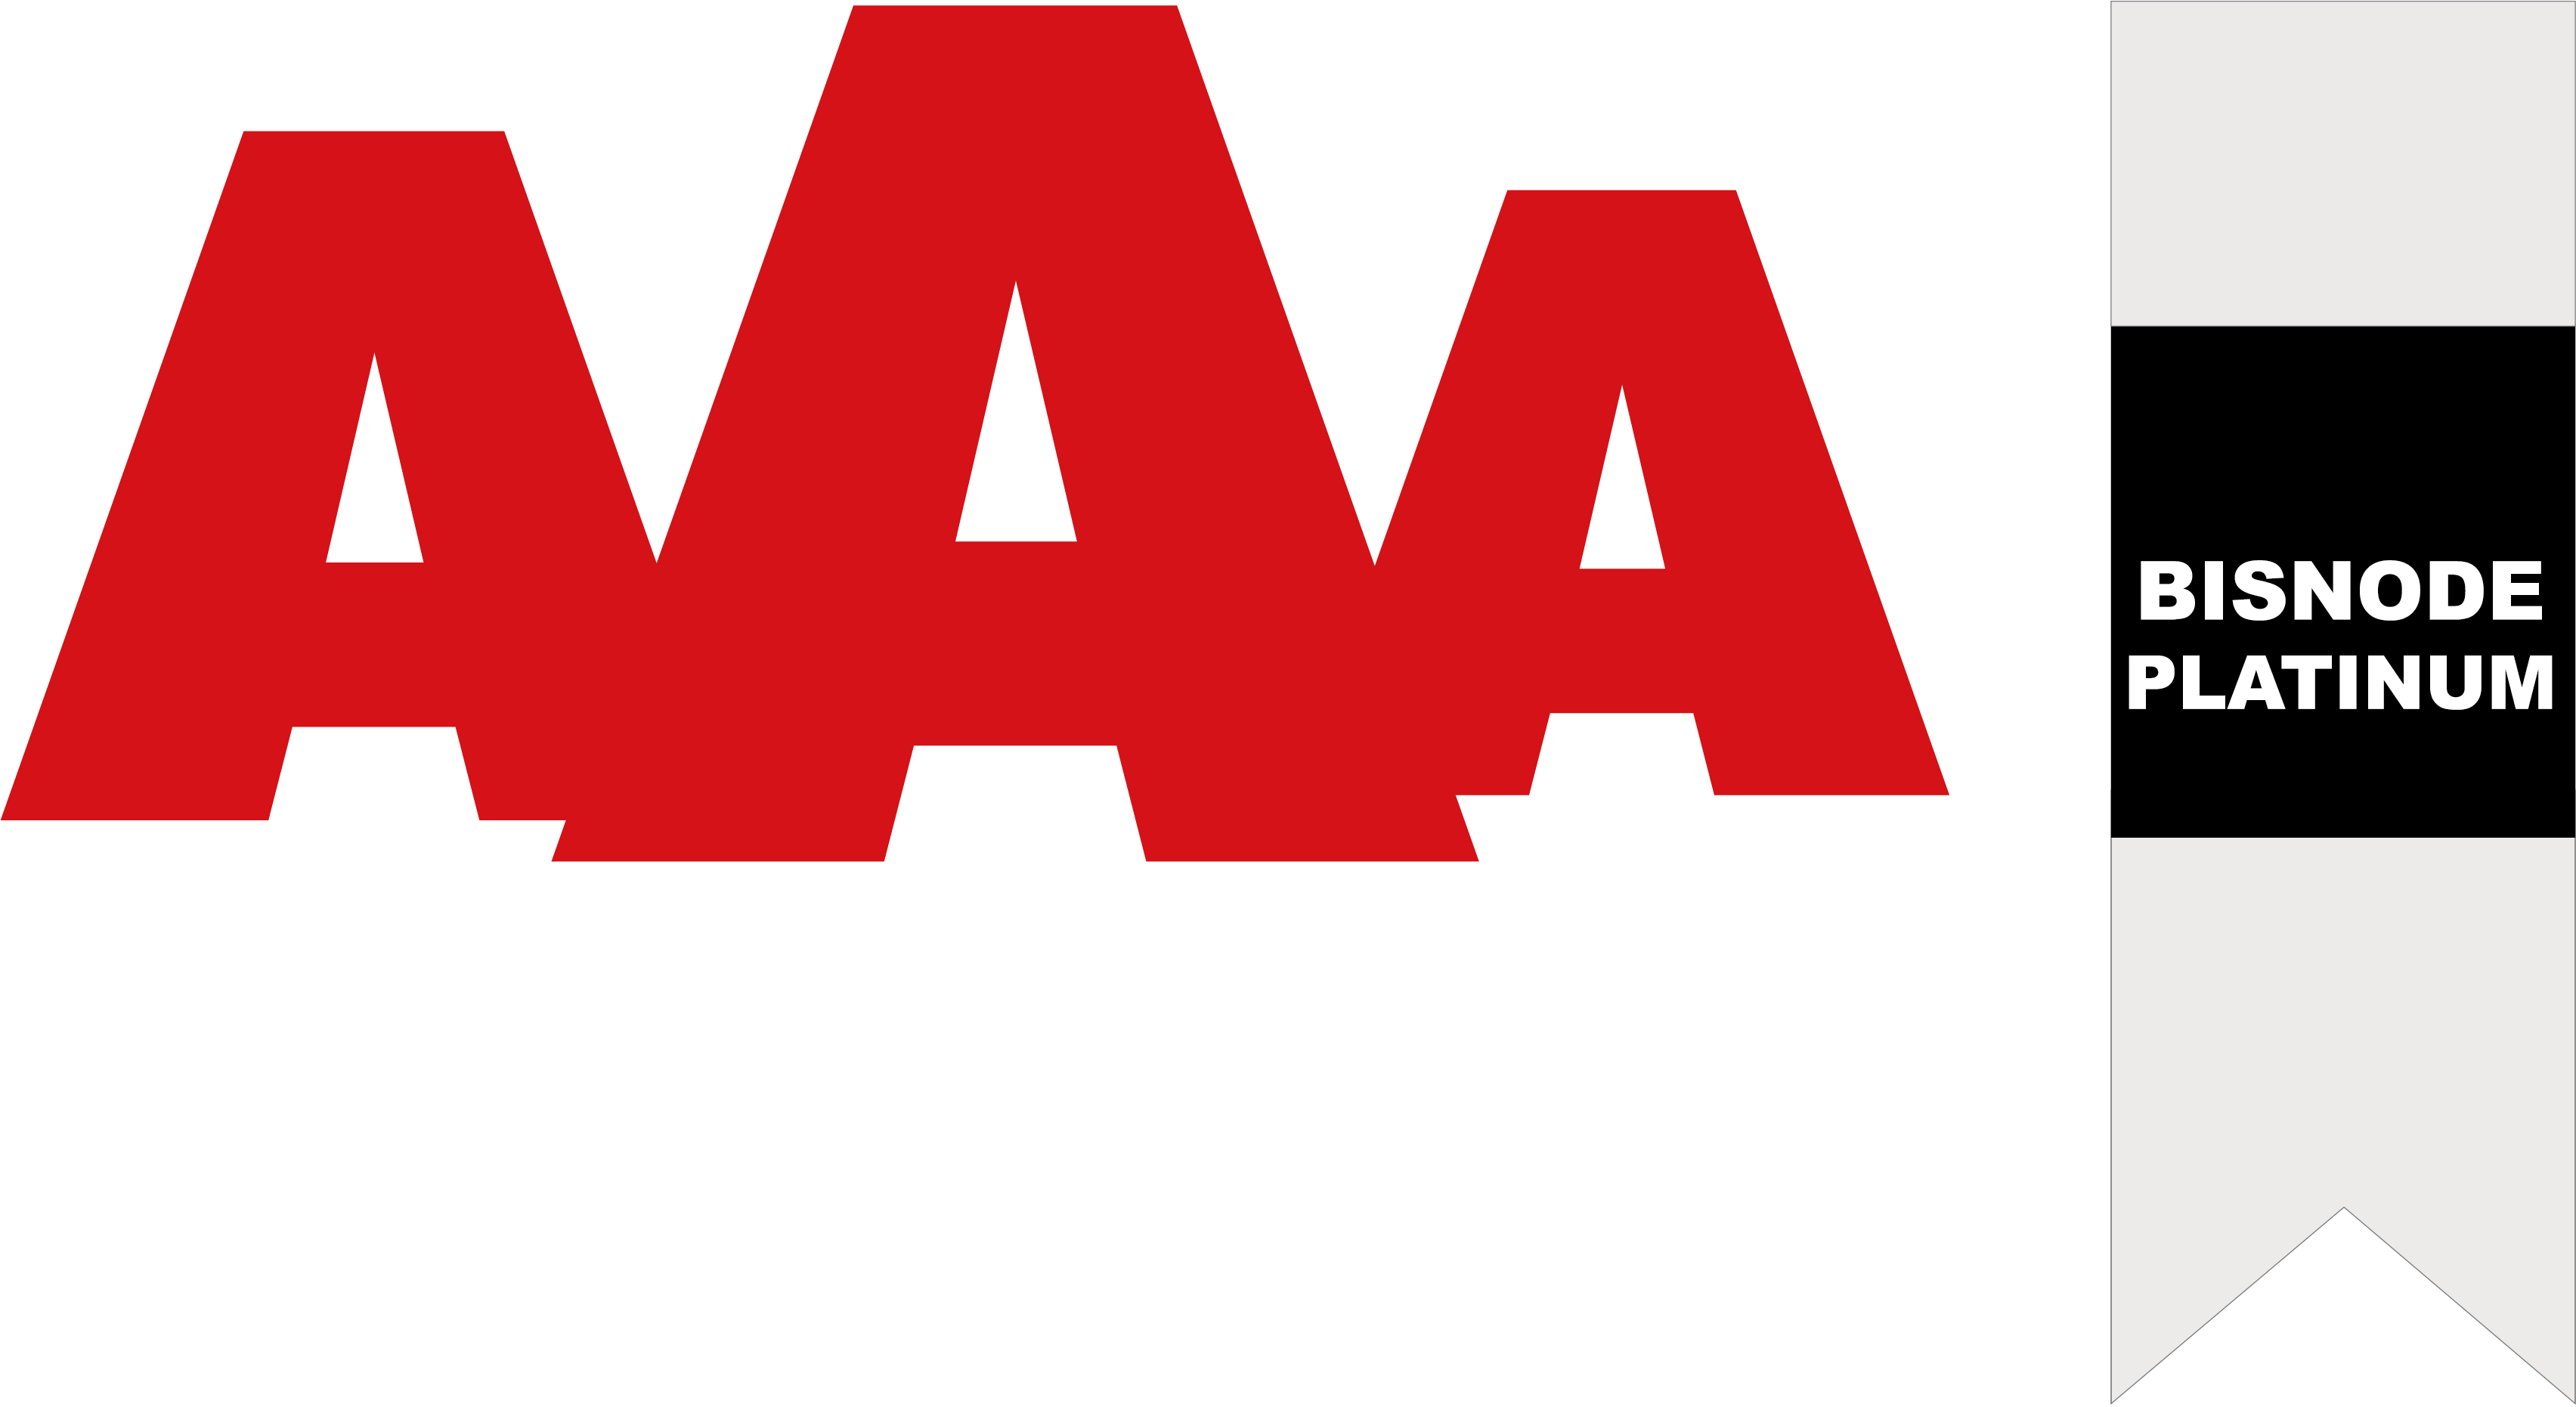 Highest creditworthiness for more than 5 years